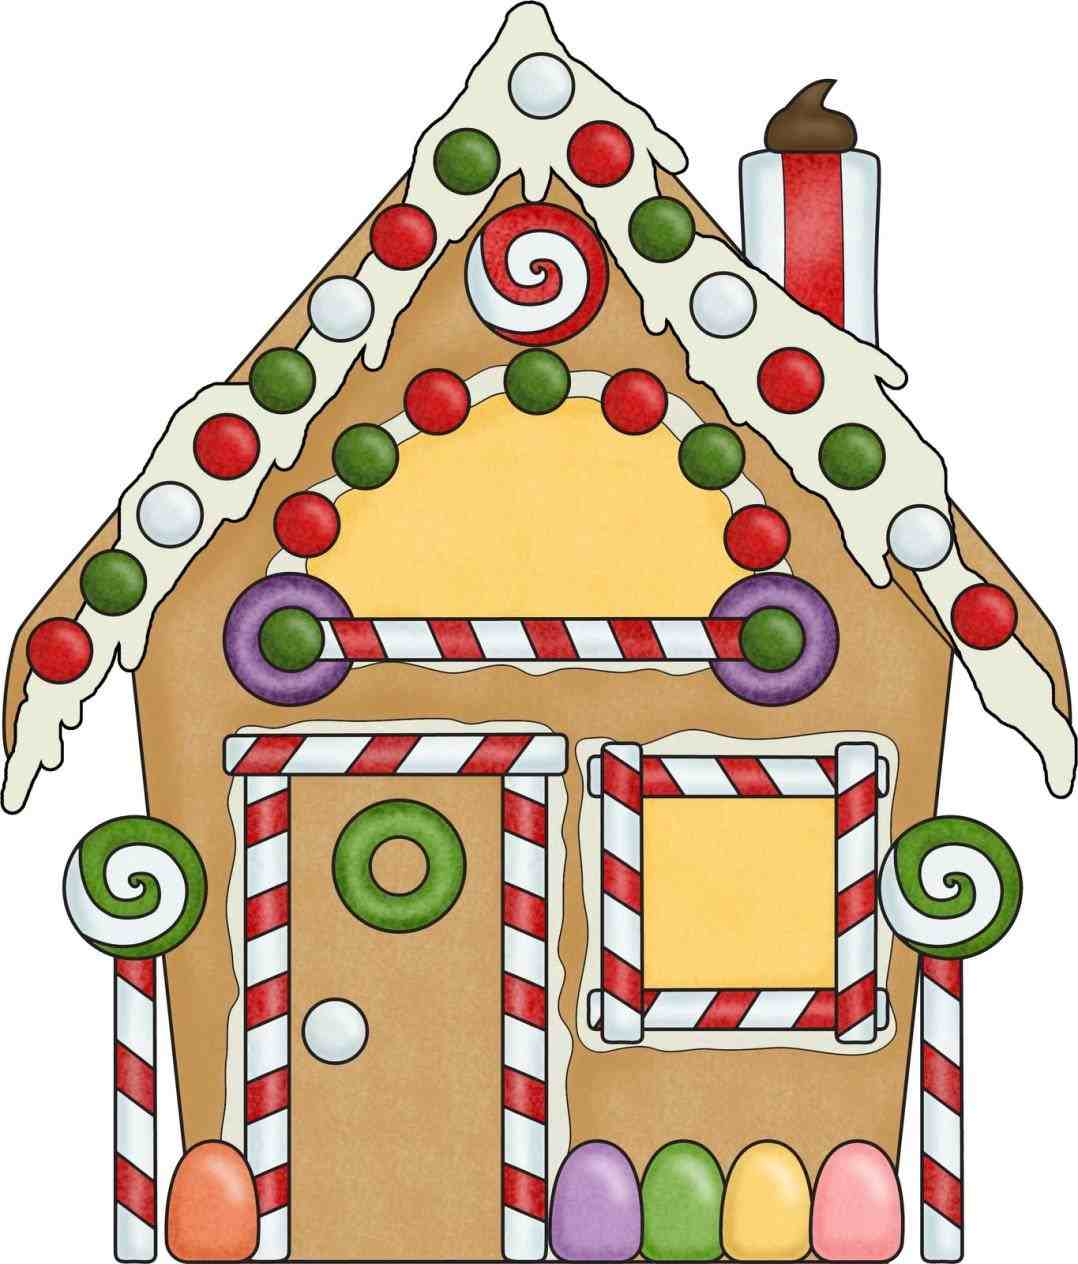 1078x1264 The Images Collection Of Paper Mache Decorative Gingerbread U Clip